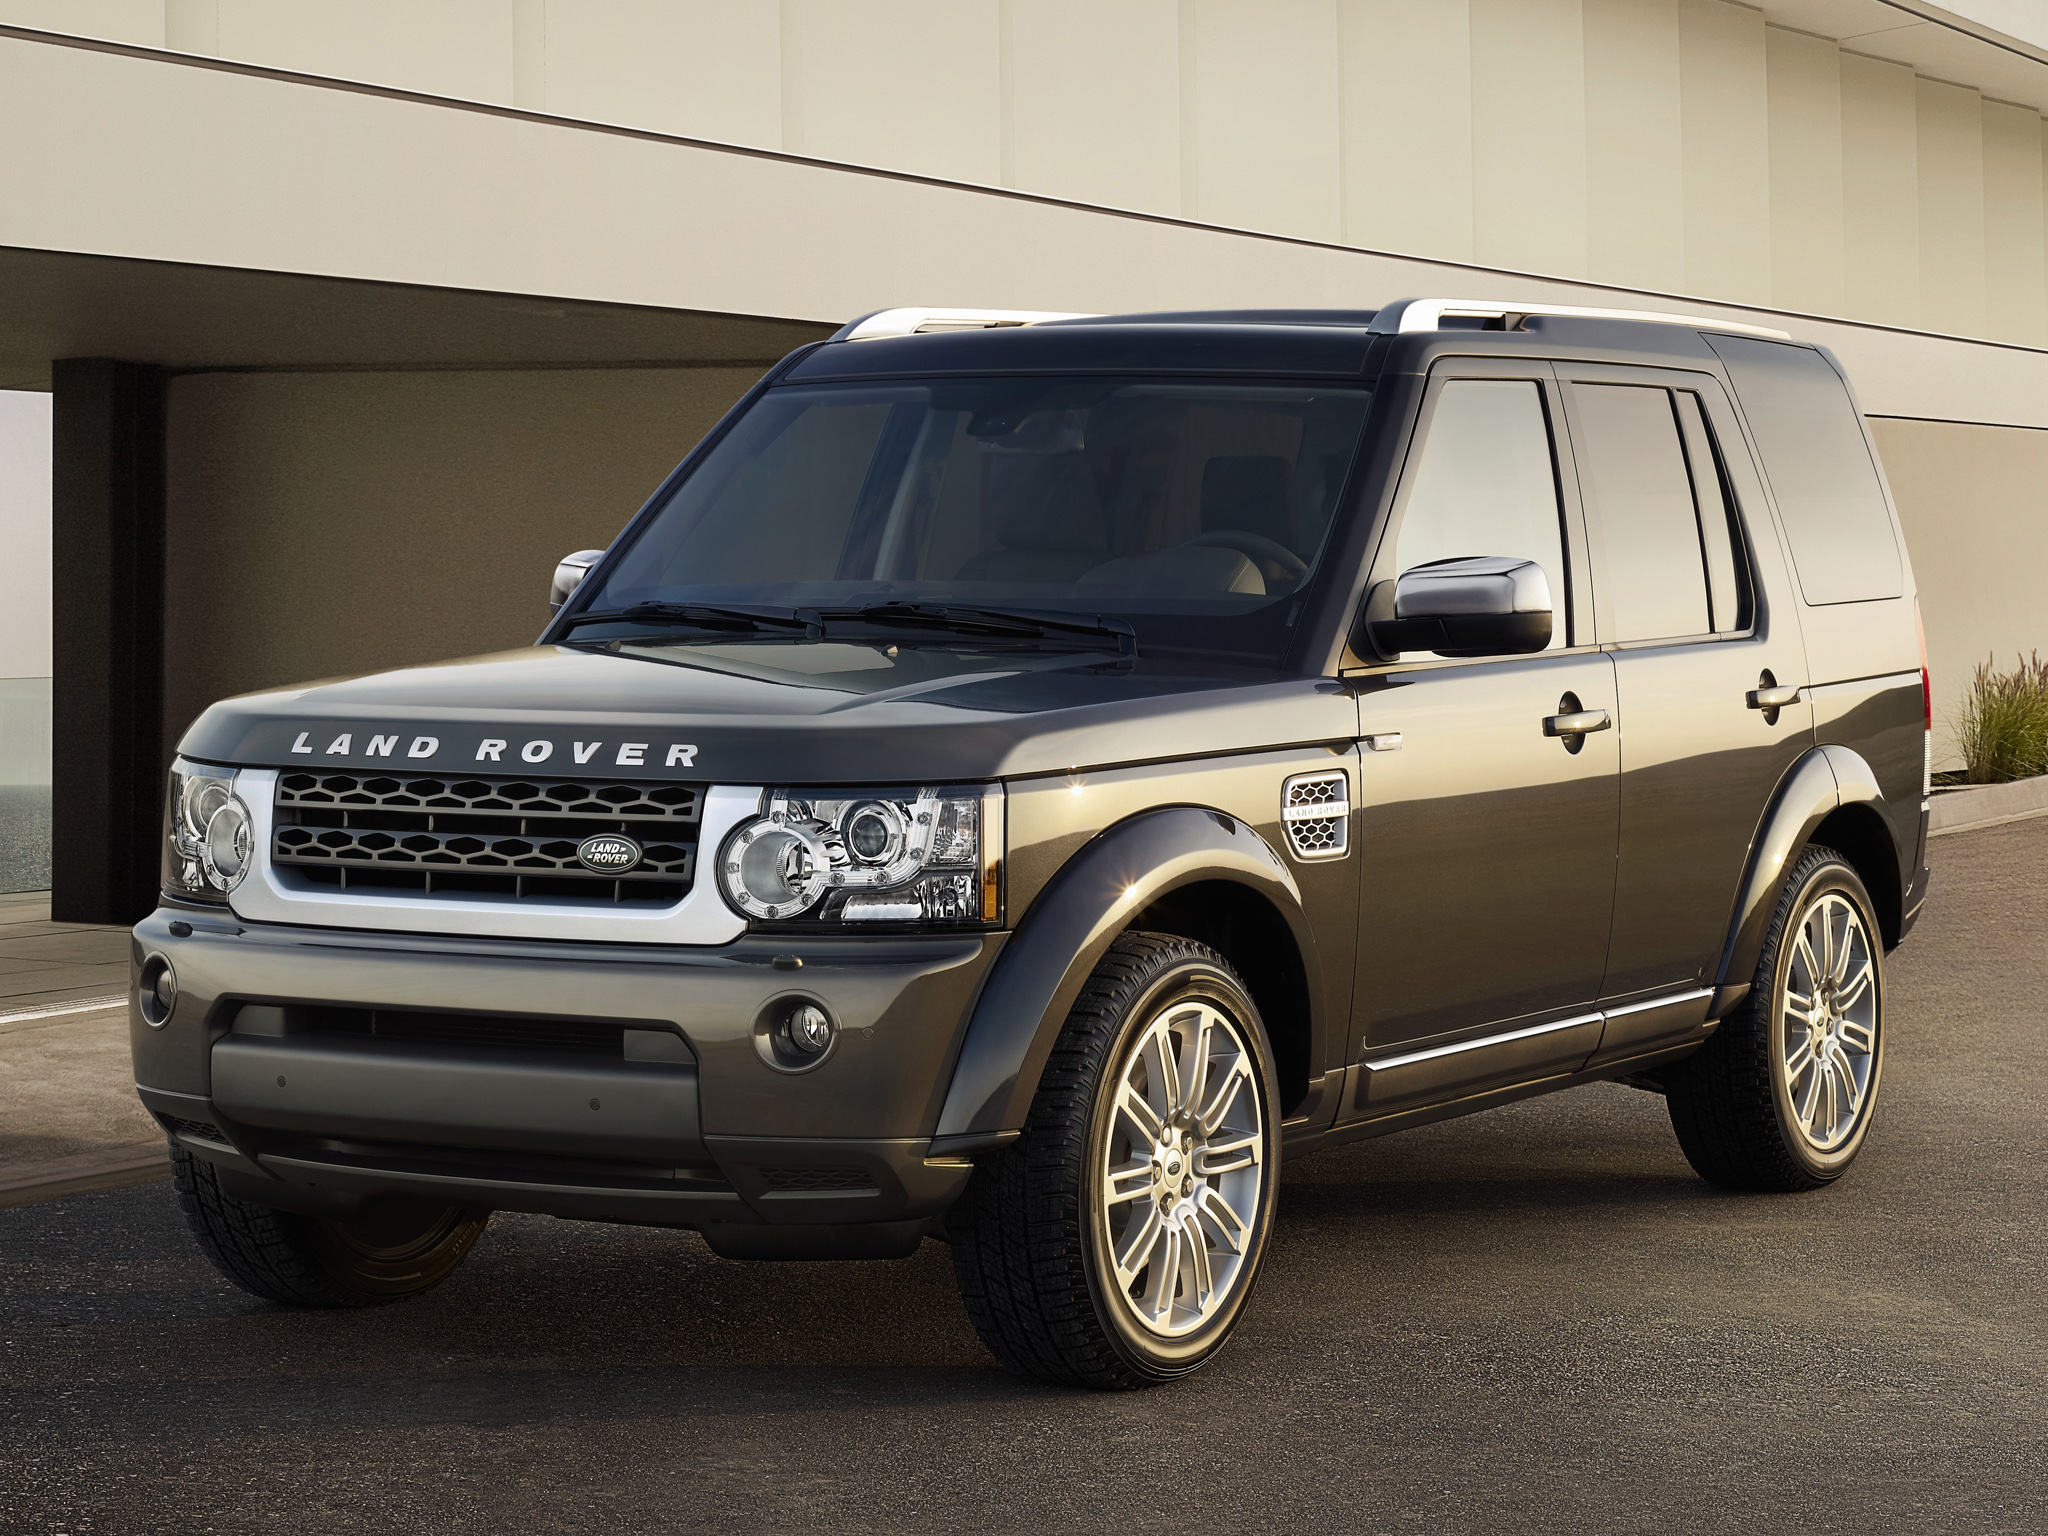 land  rover discovery 4 hse Free Picture Download Image Of